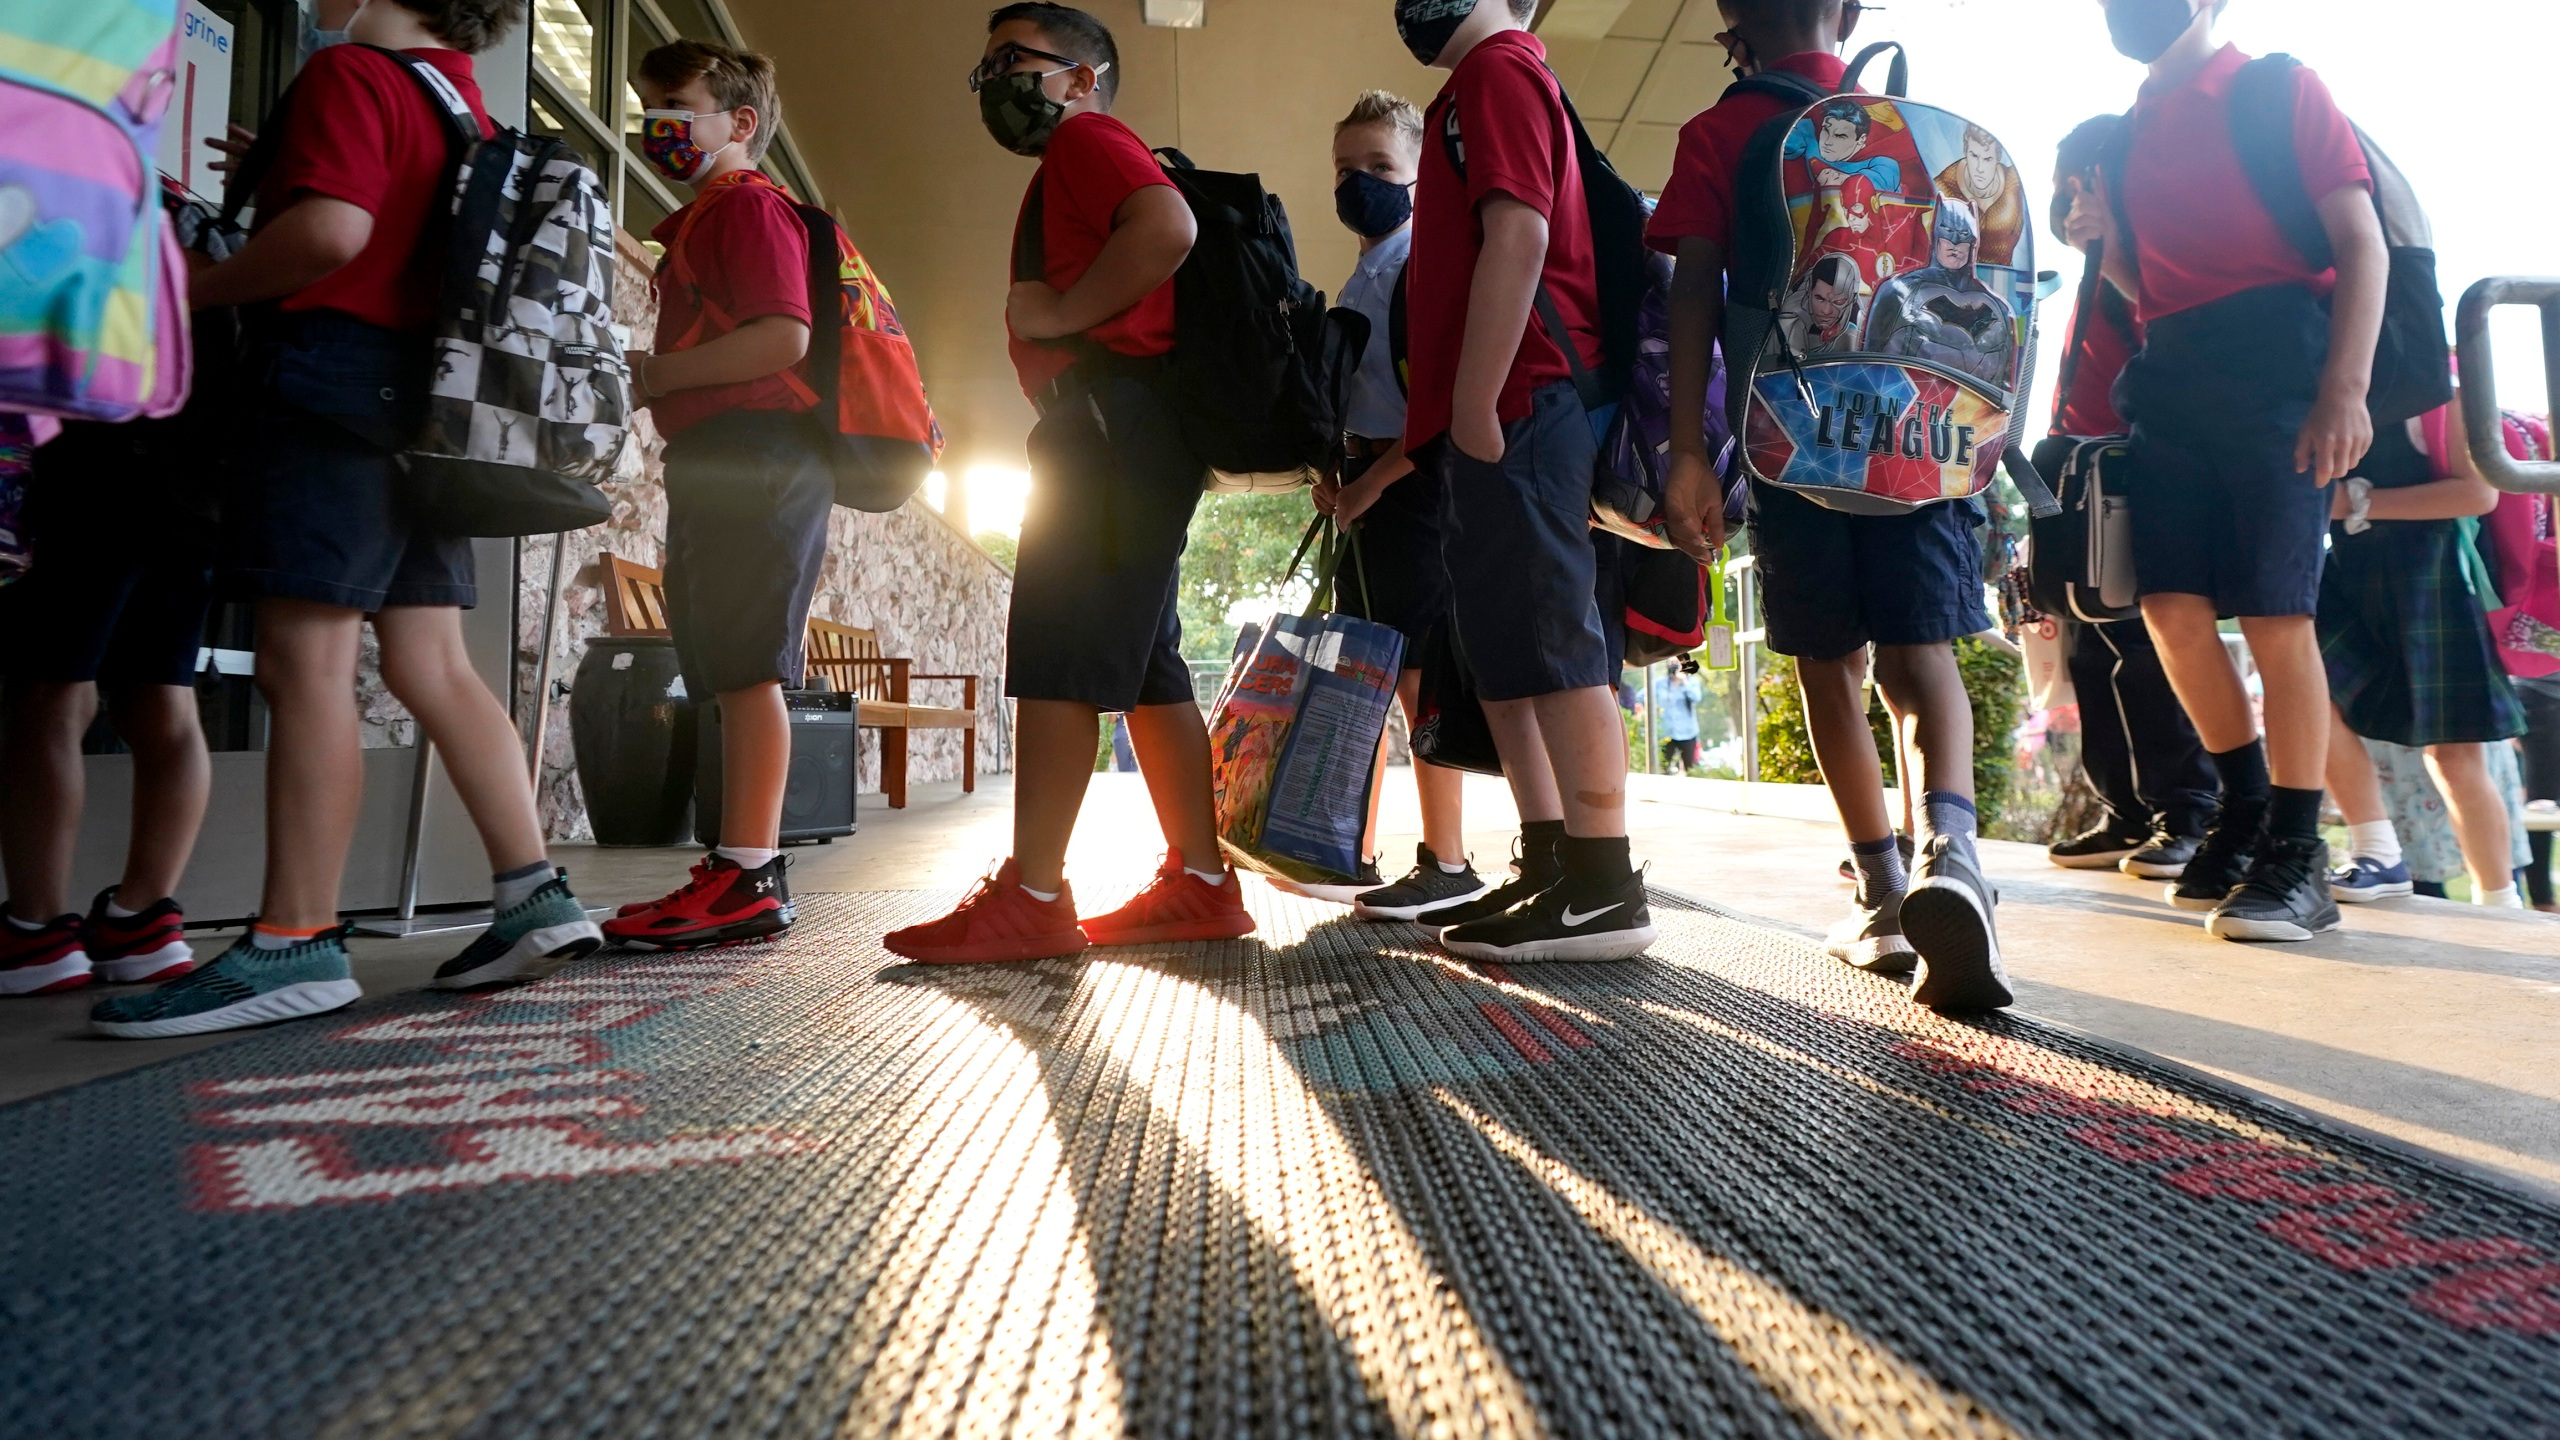 Wearing masks to prevent the spread of COVID-19, elementary school students line up to enter school for the first day of classes in Richardson, Texas, Tuesday, Aug. 17, 2021. (AP Photo/LM Otero)